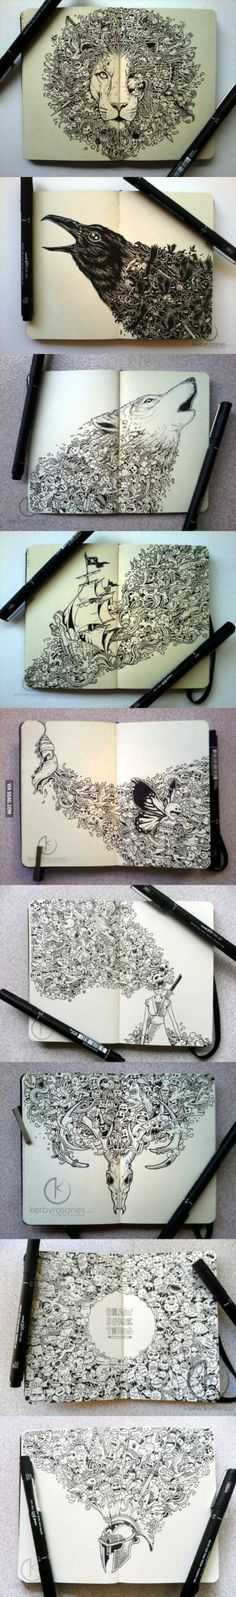 nice sketches